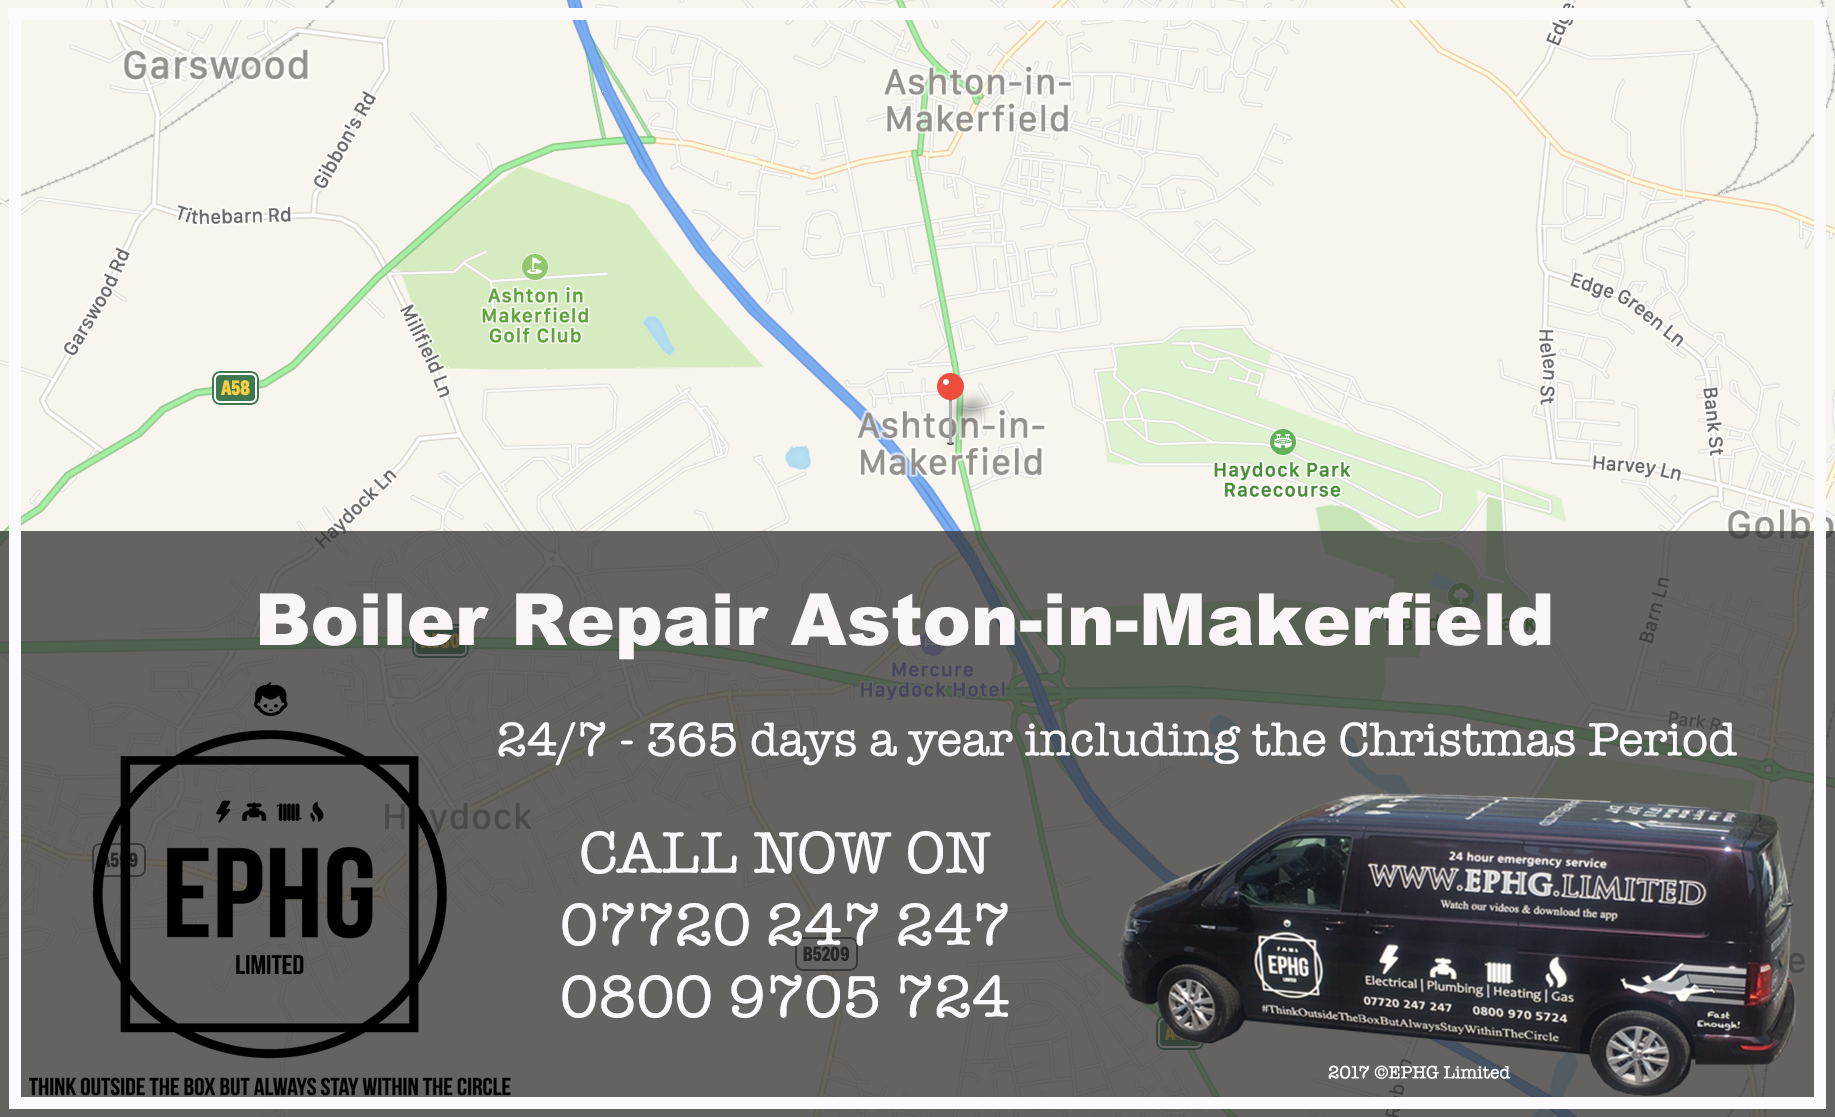 24 Hour Emergency Boiler Repair Ashton-in-Makerfield